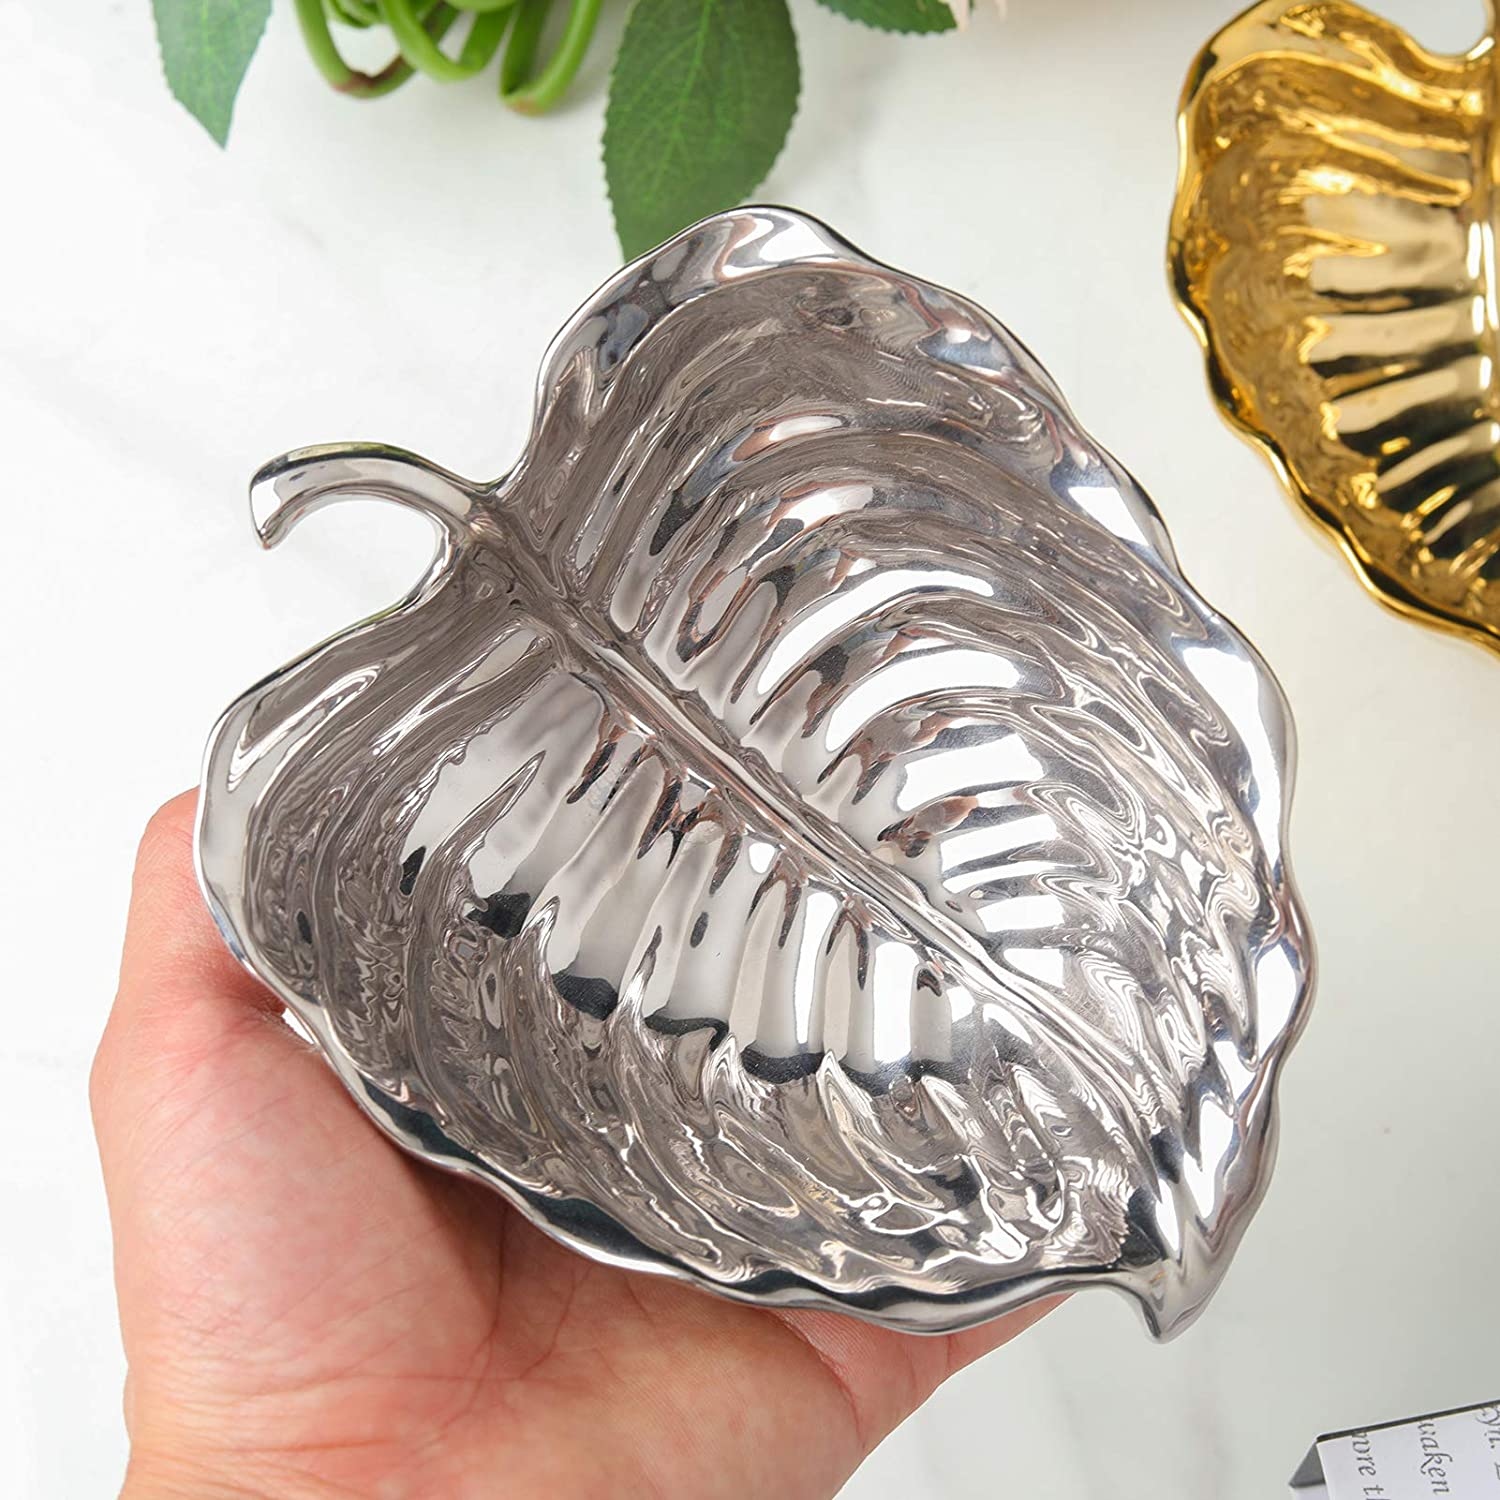 Gold or Silver Leaf Decorative Tray – Premium Ceramic Table Centerpiece – Leaf-Shaped Serving Bowl for Candy, Fruits, Jewelry – Elegant and Modern Trinket Dish for Kitchen, Living Room, Bedroom